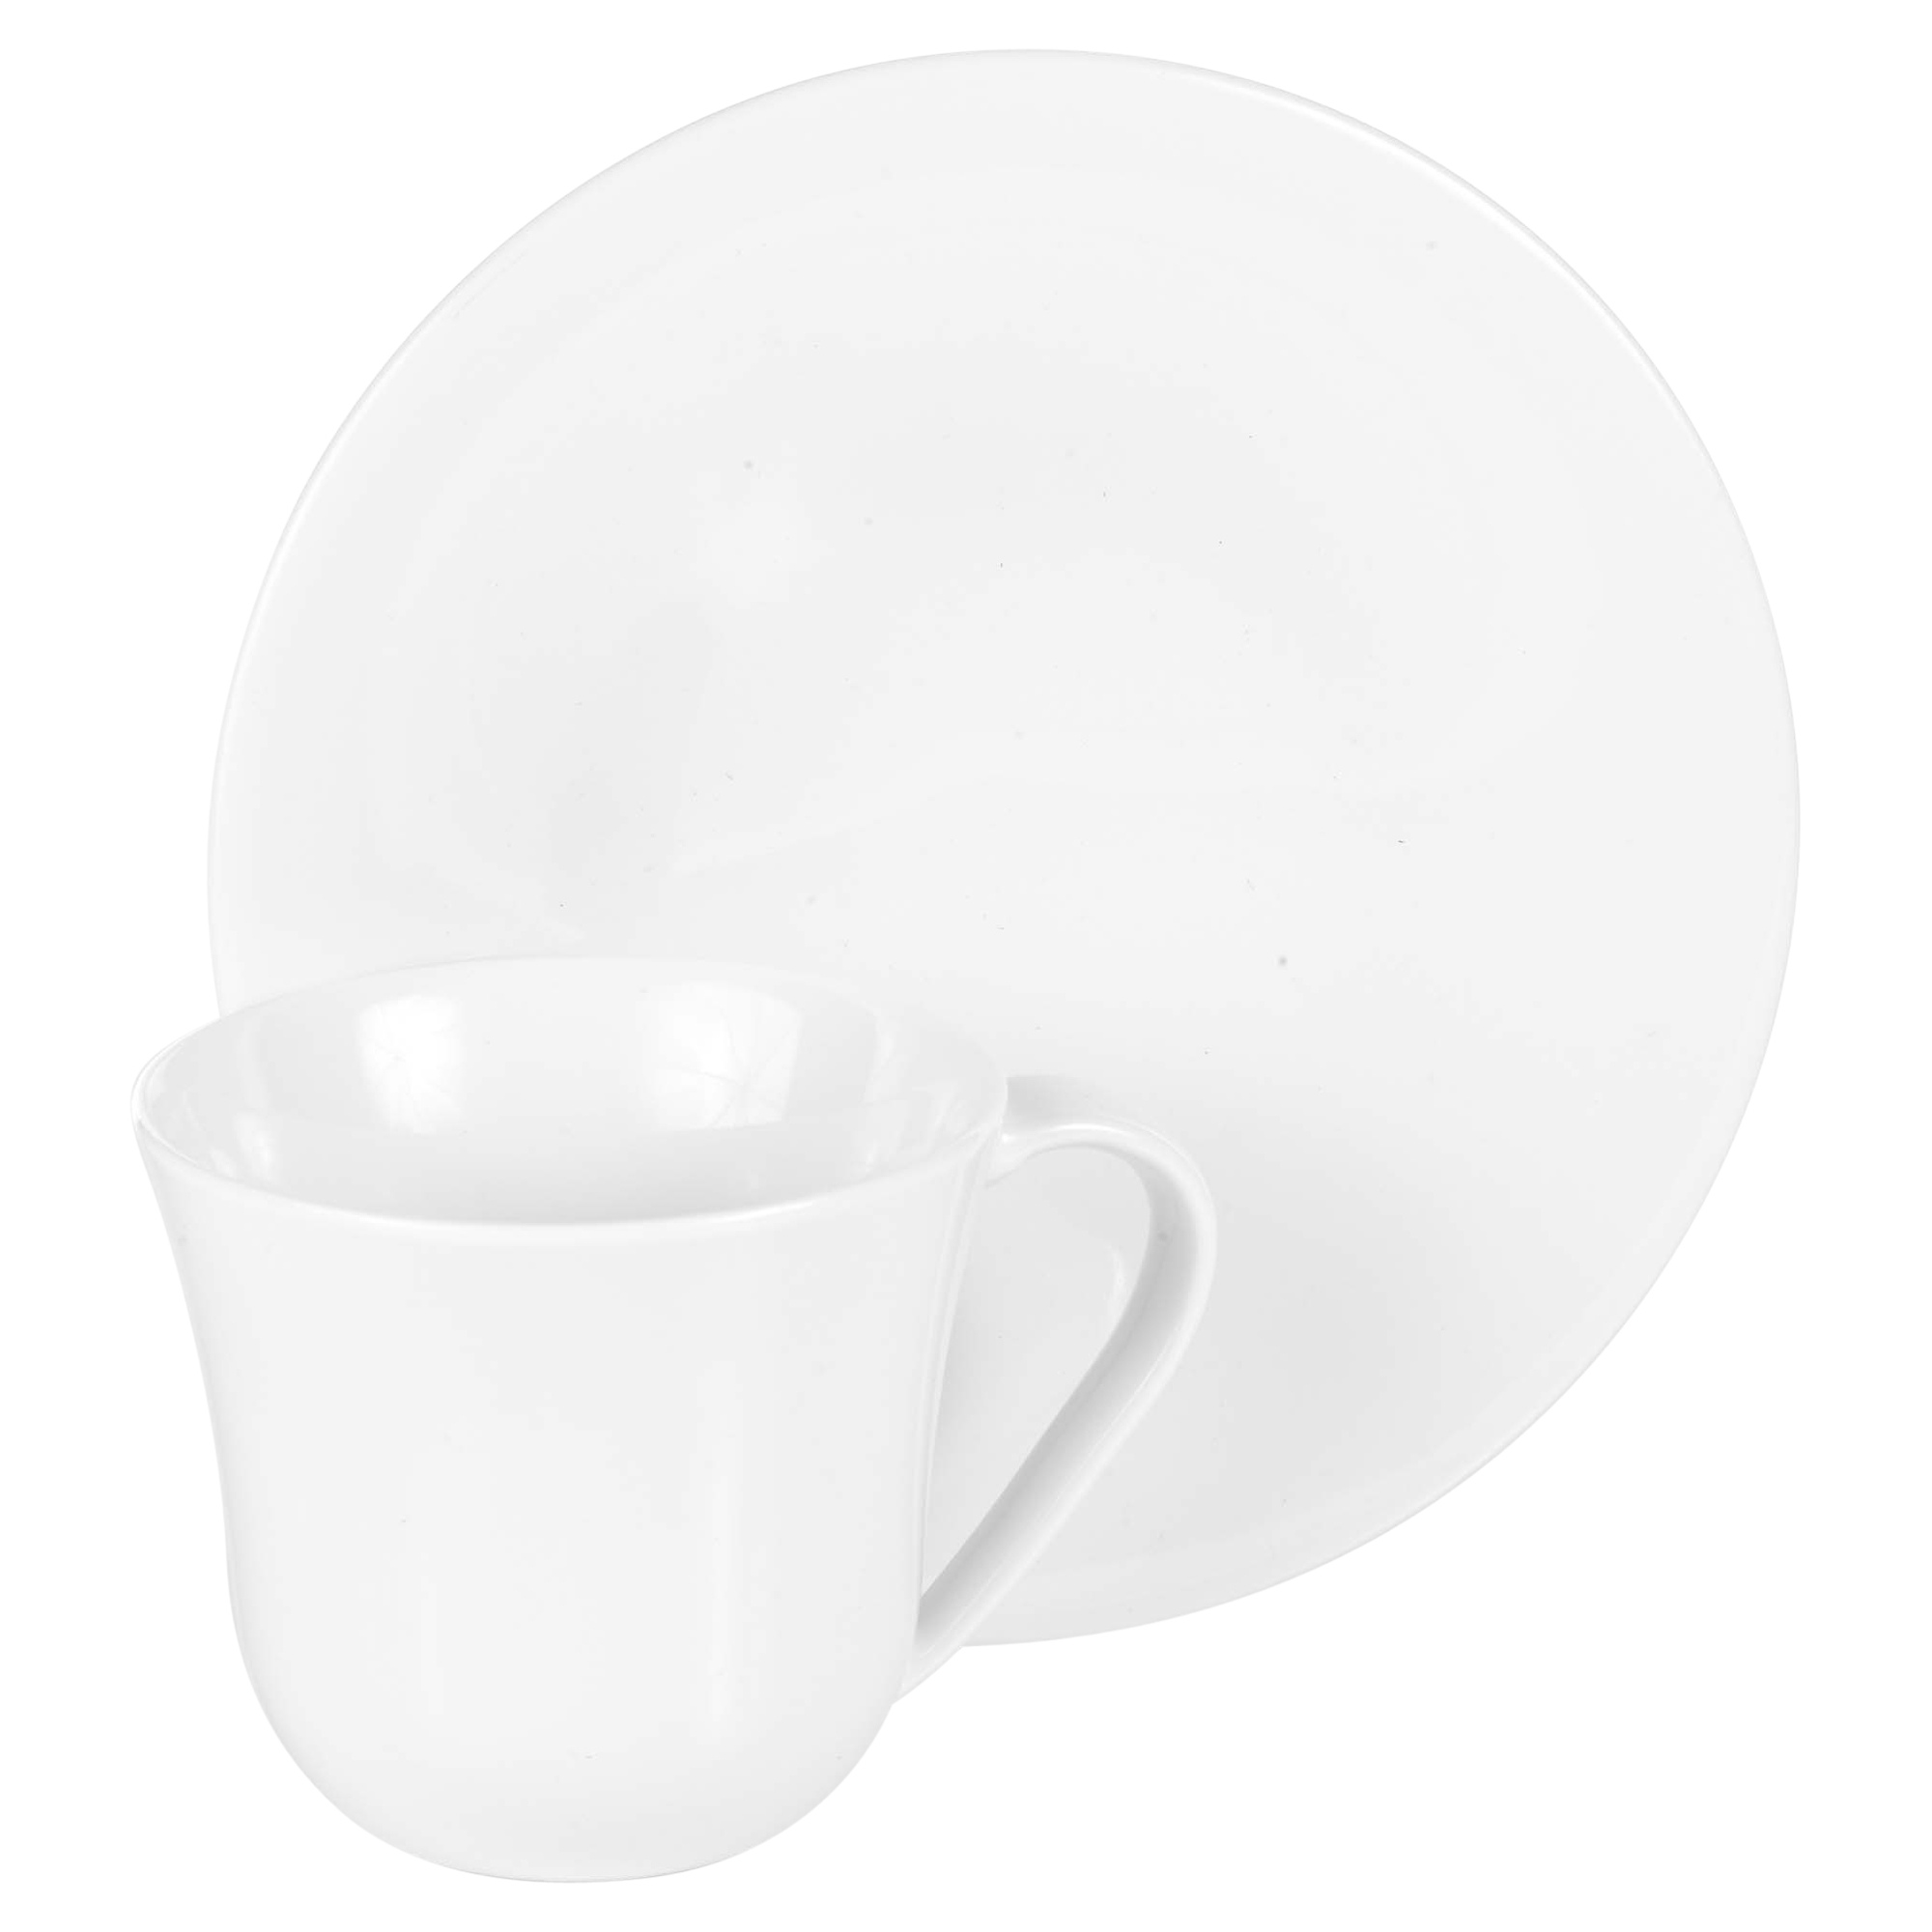 Fancy Cappuccino Cups Alessi Ku Set Of 6 Cups And Saucers Modern Porcelain Coffee